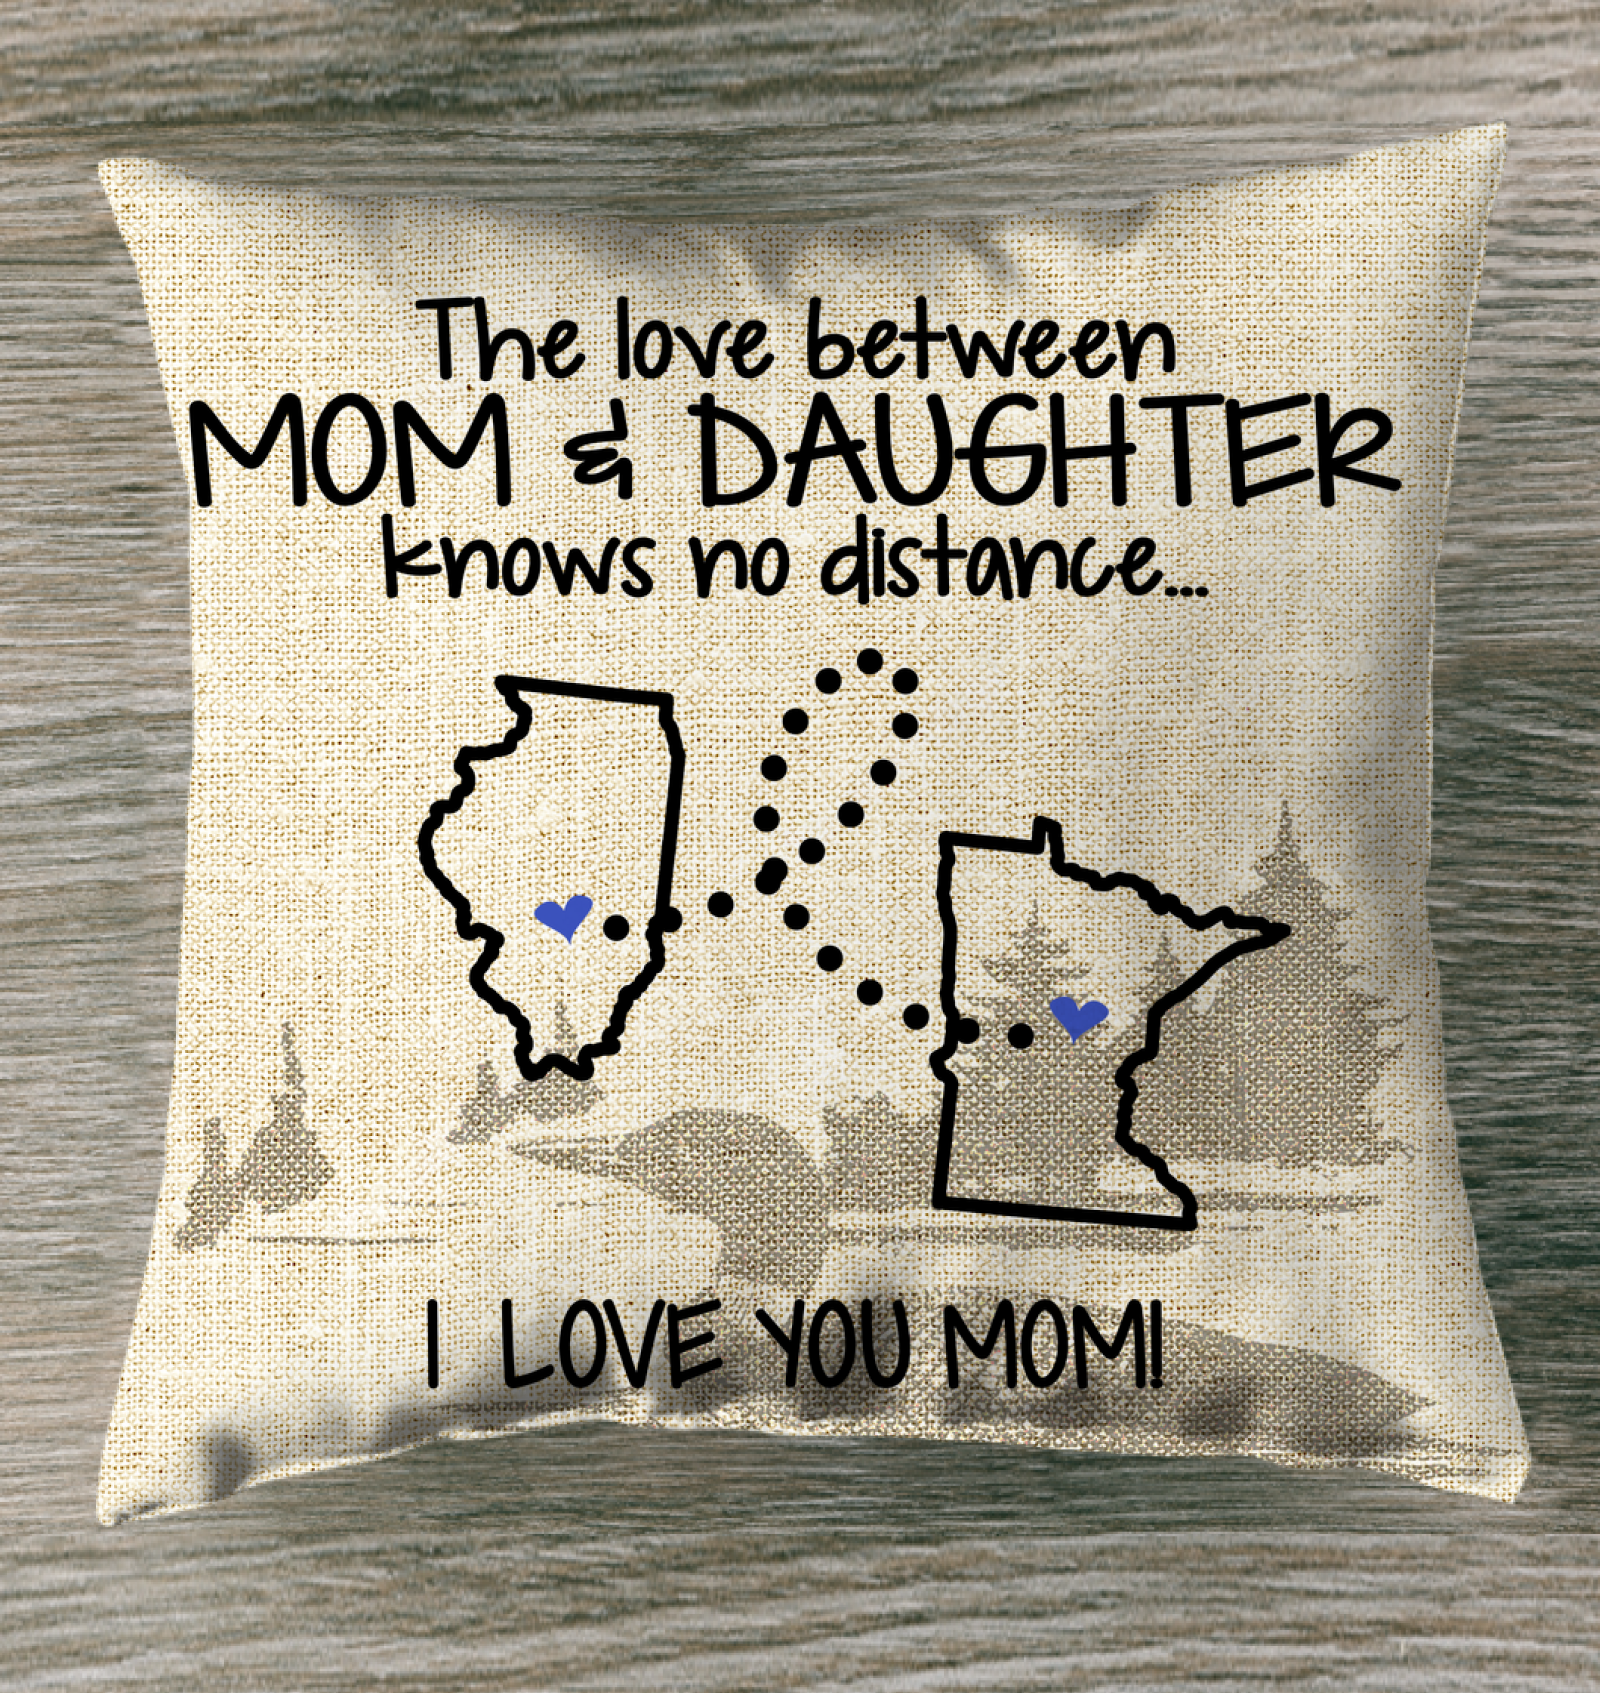 MINNESOTA ILLINOIS THE LOVE BETWEEN MOM AND DAUGHTER